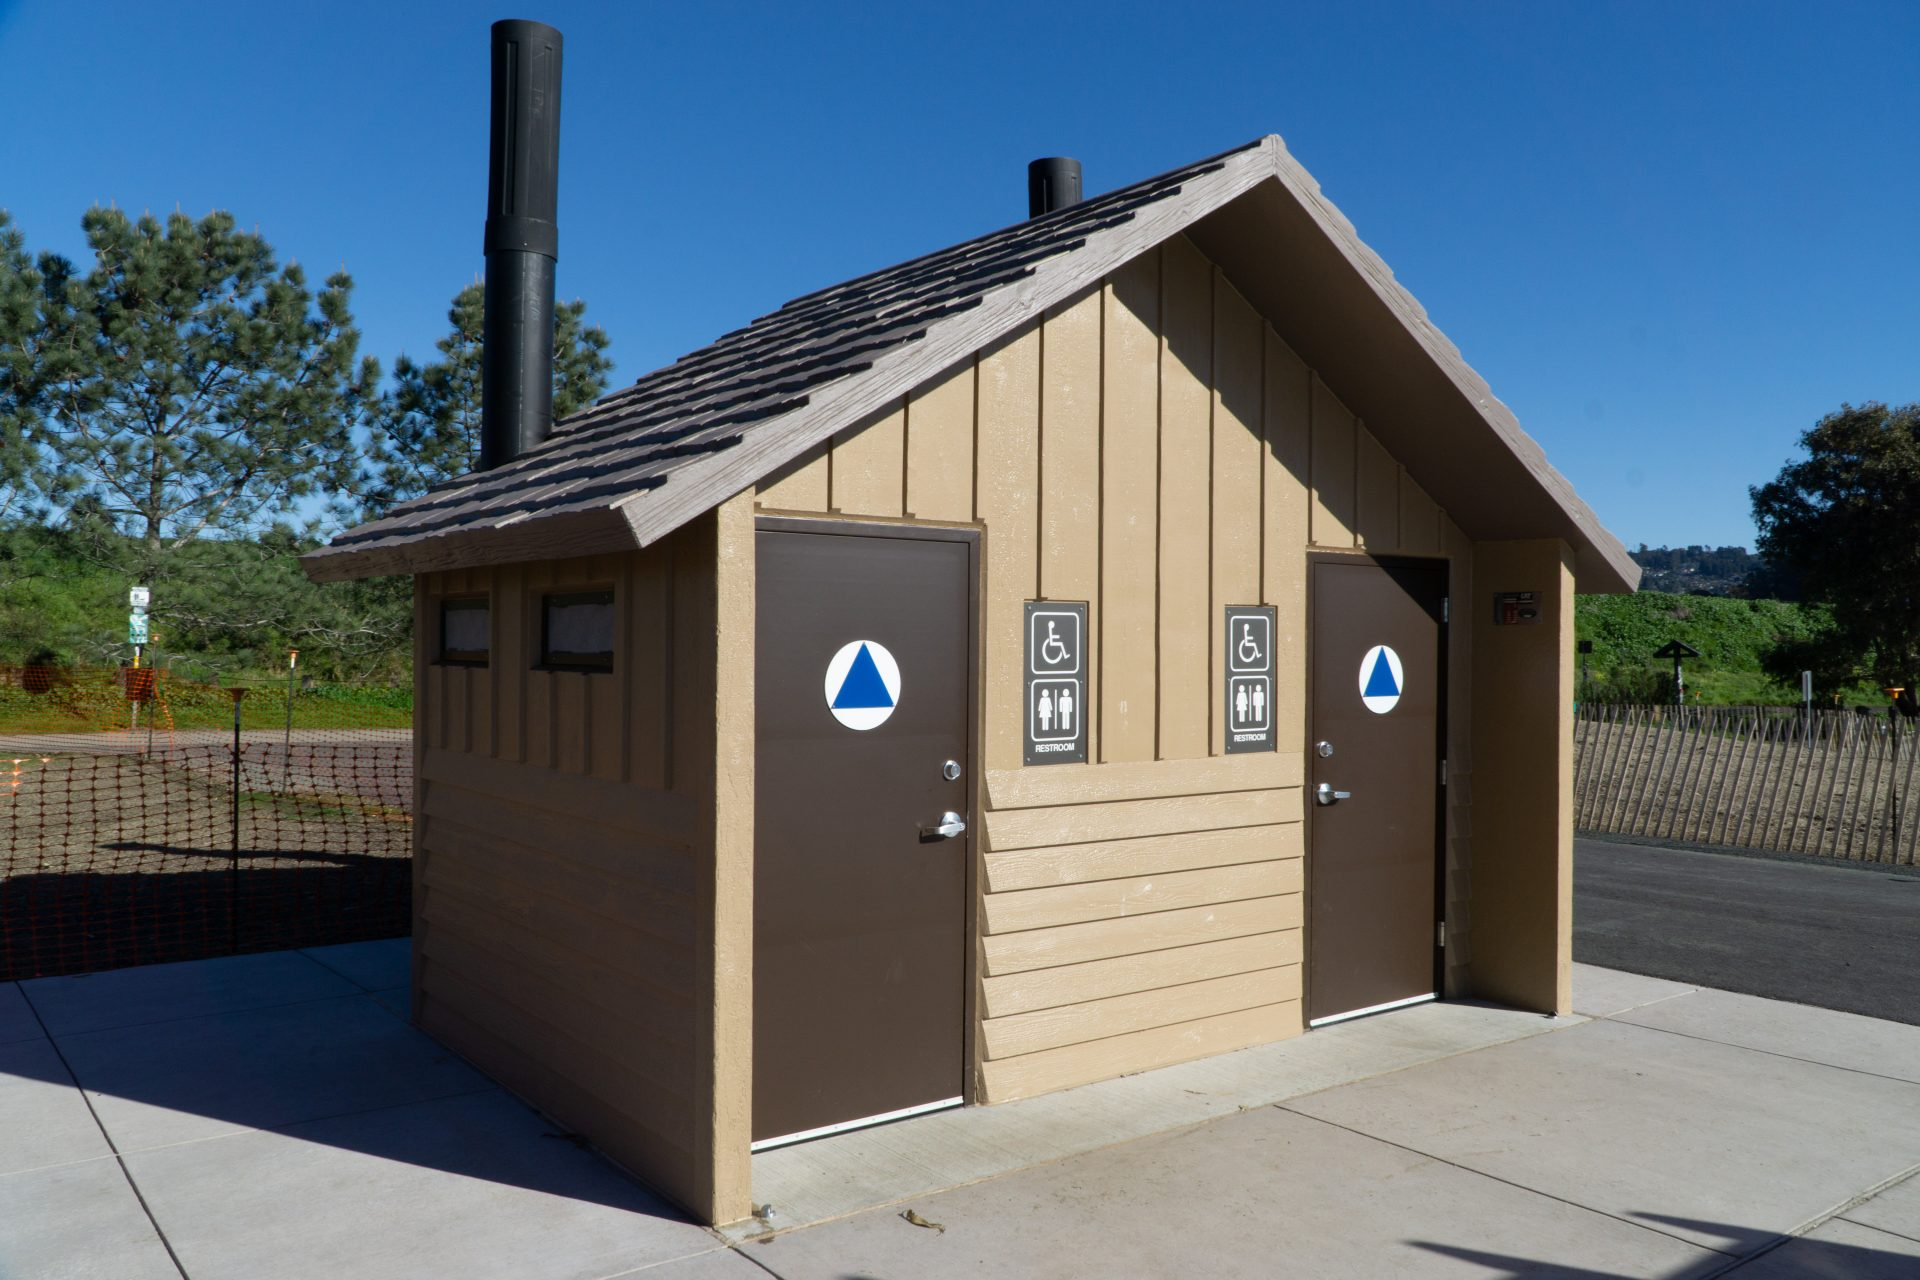 accessible vault toilet building